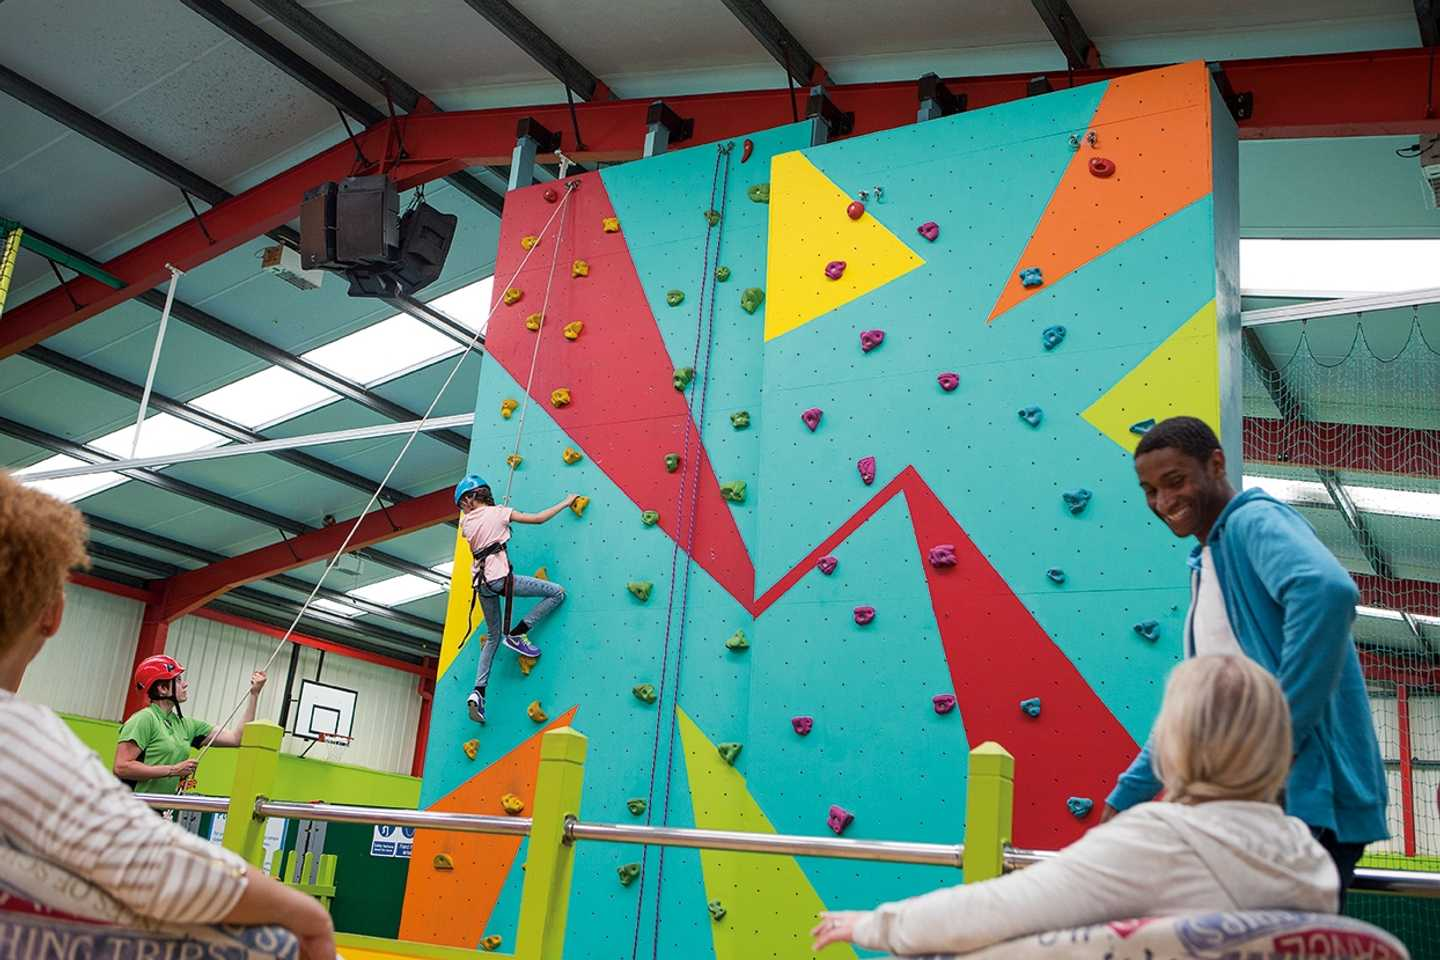 Indoor climbing wall at Presthaven